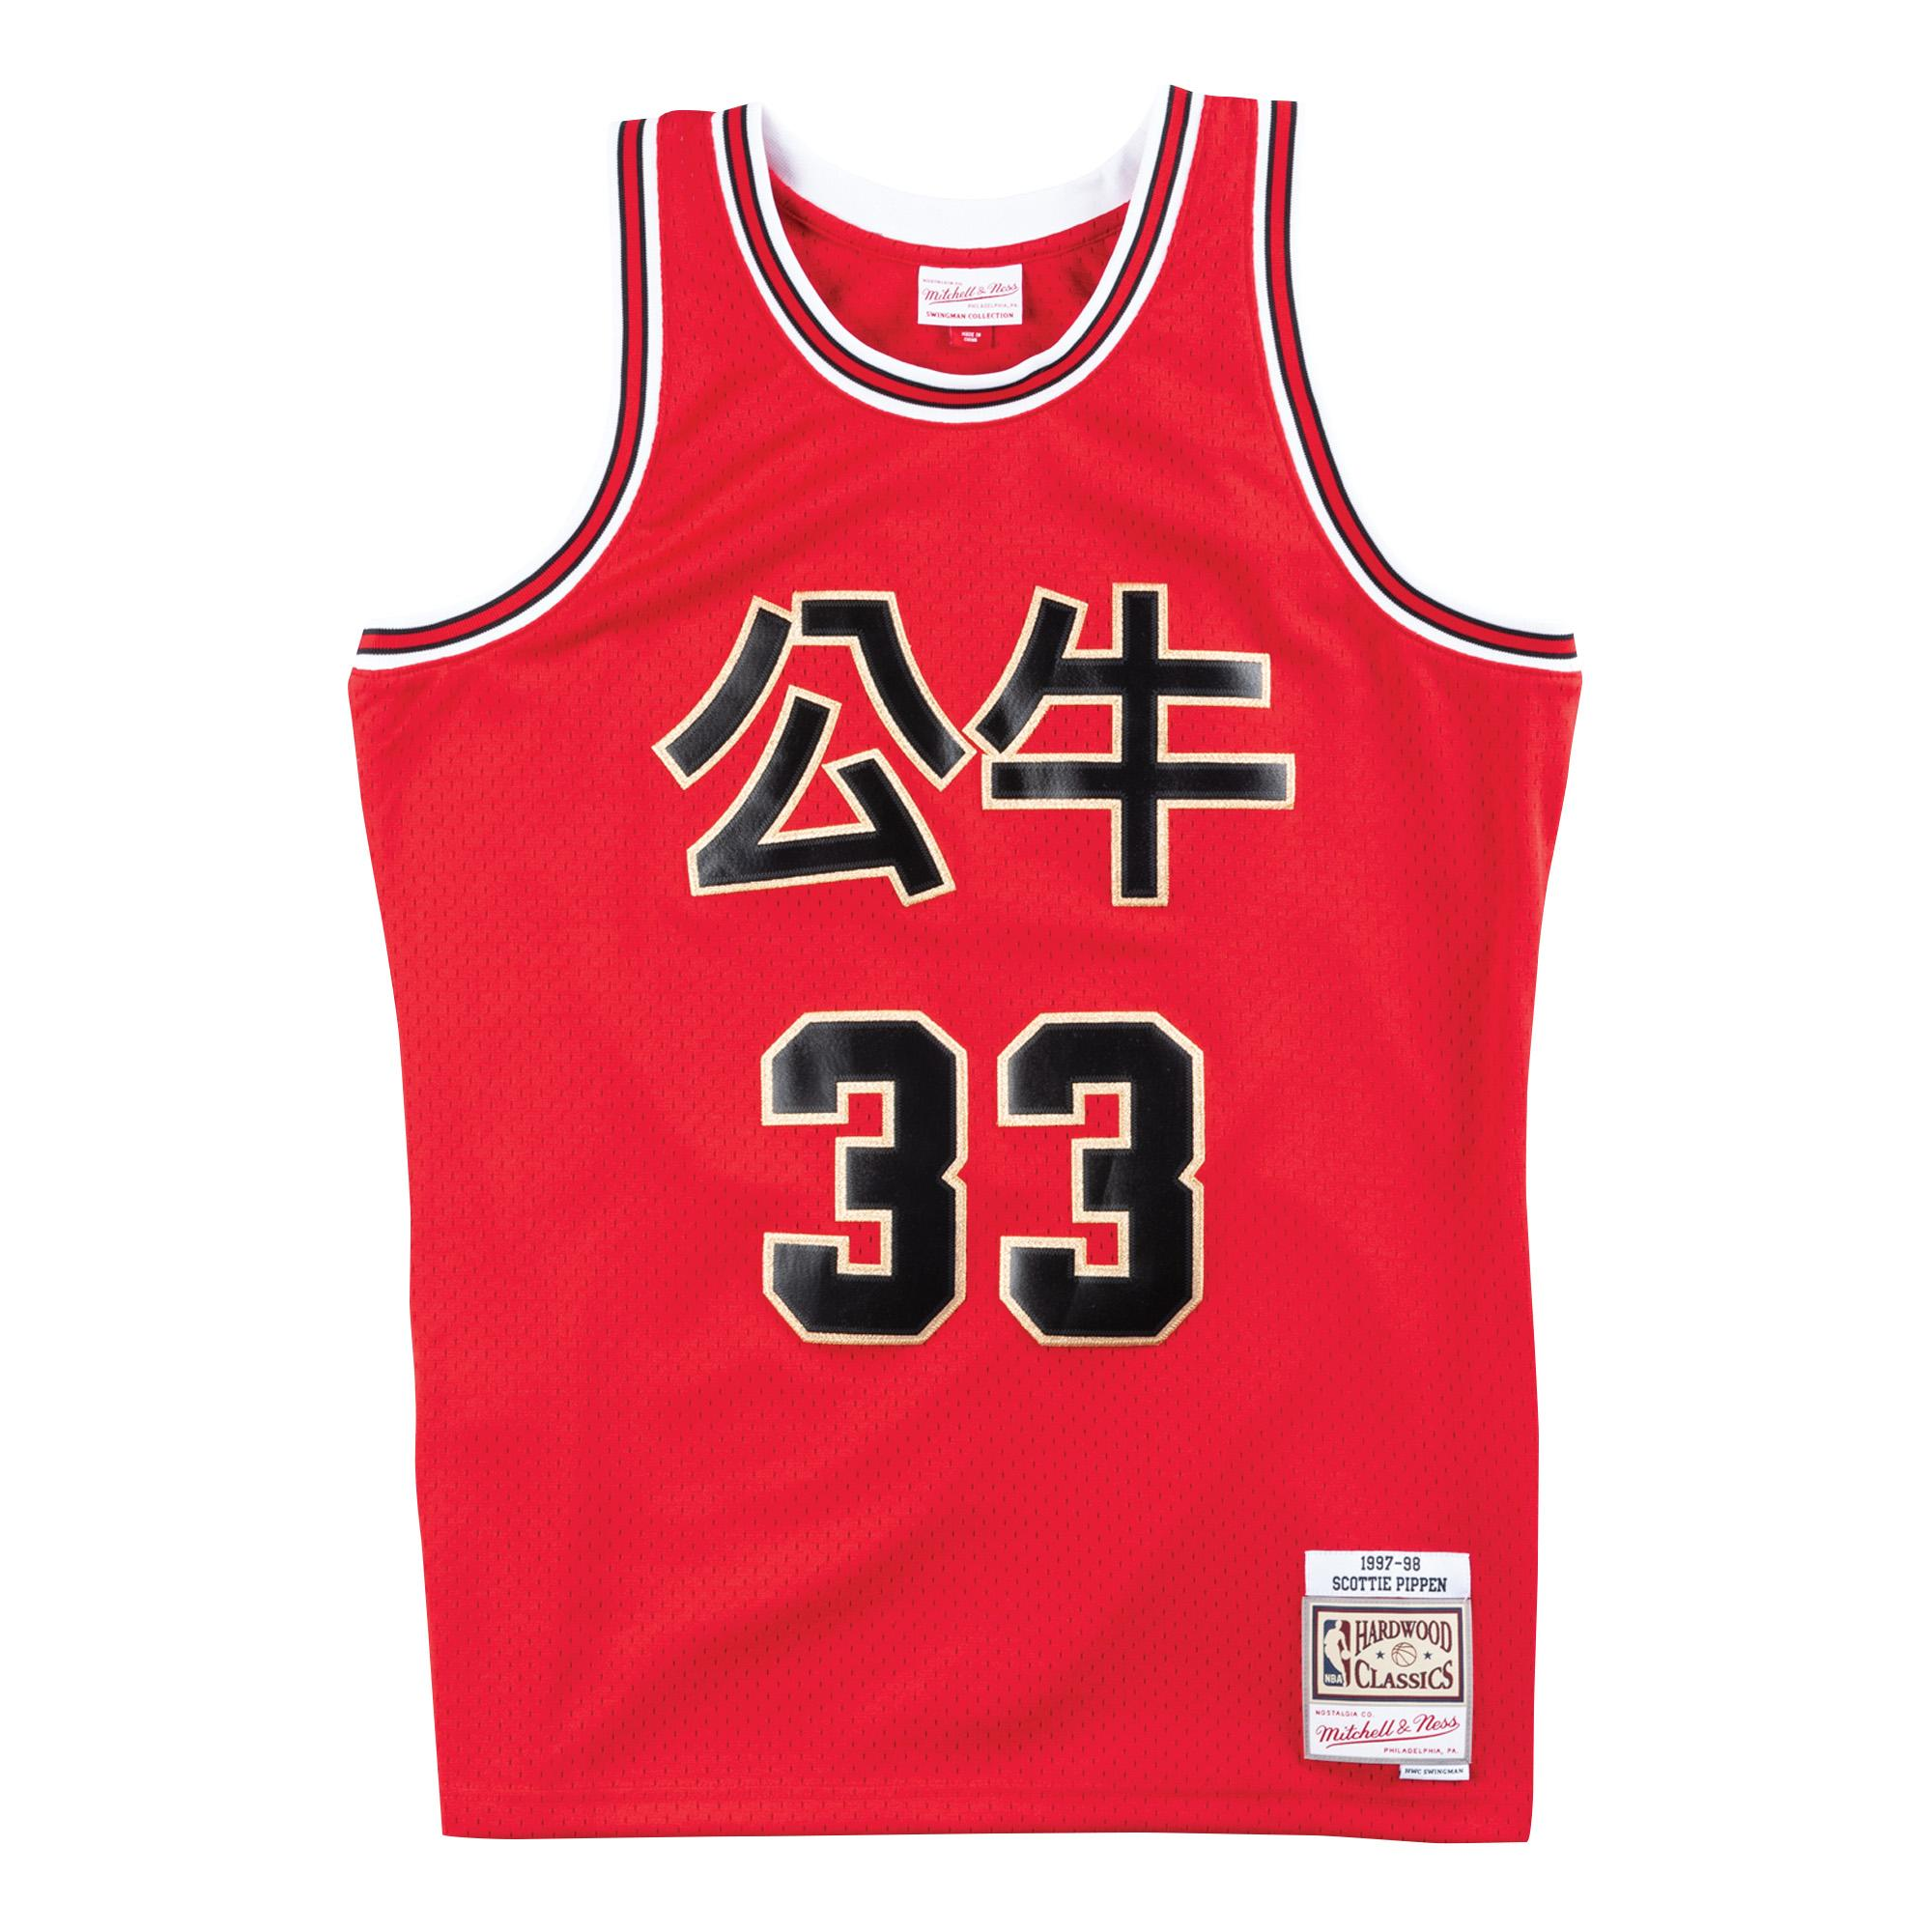 8b1749eb6ea Chinese New Year Scottie Pippen Swingman Jersey Chicago Bulls